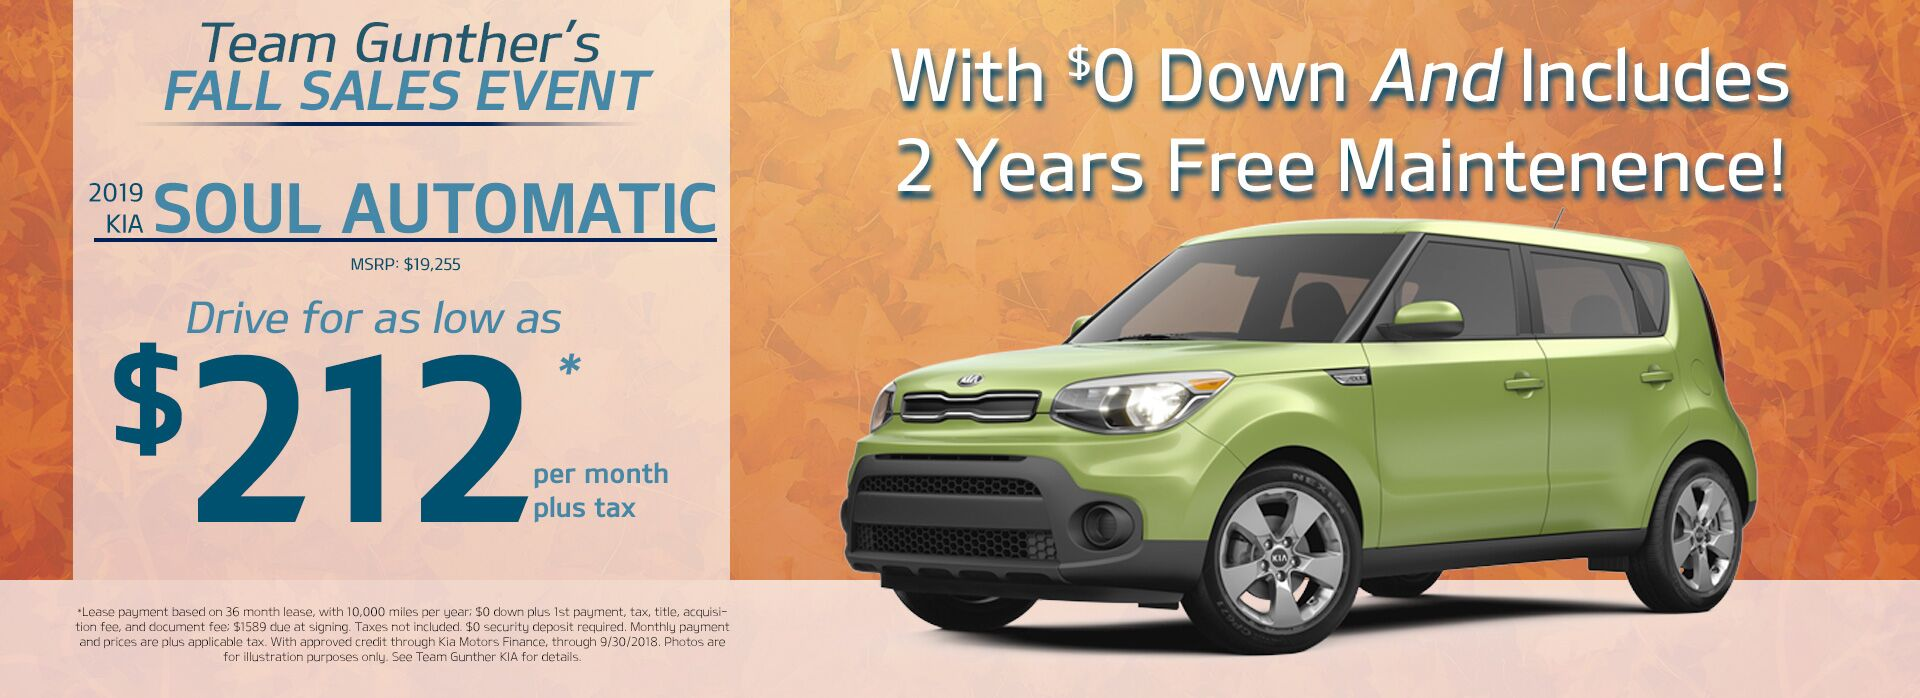 Eastern Shore Kia Vehicle Specials In Daphne Al